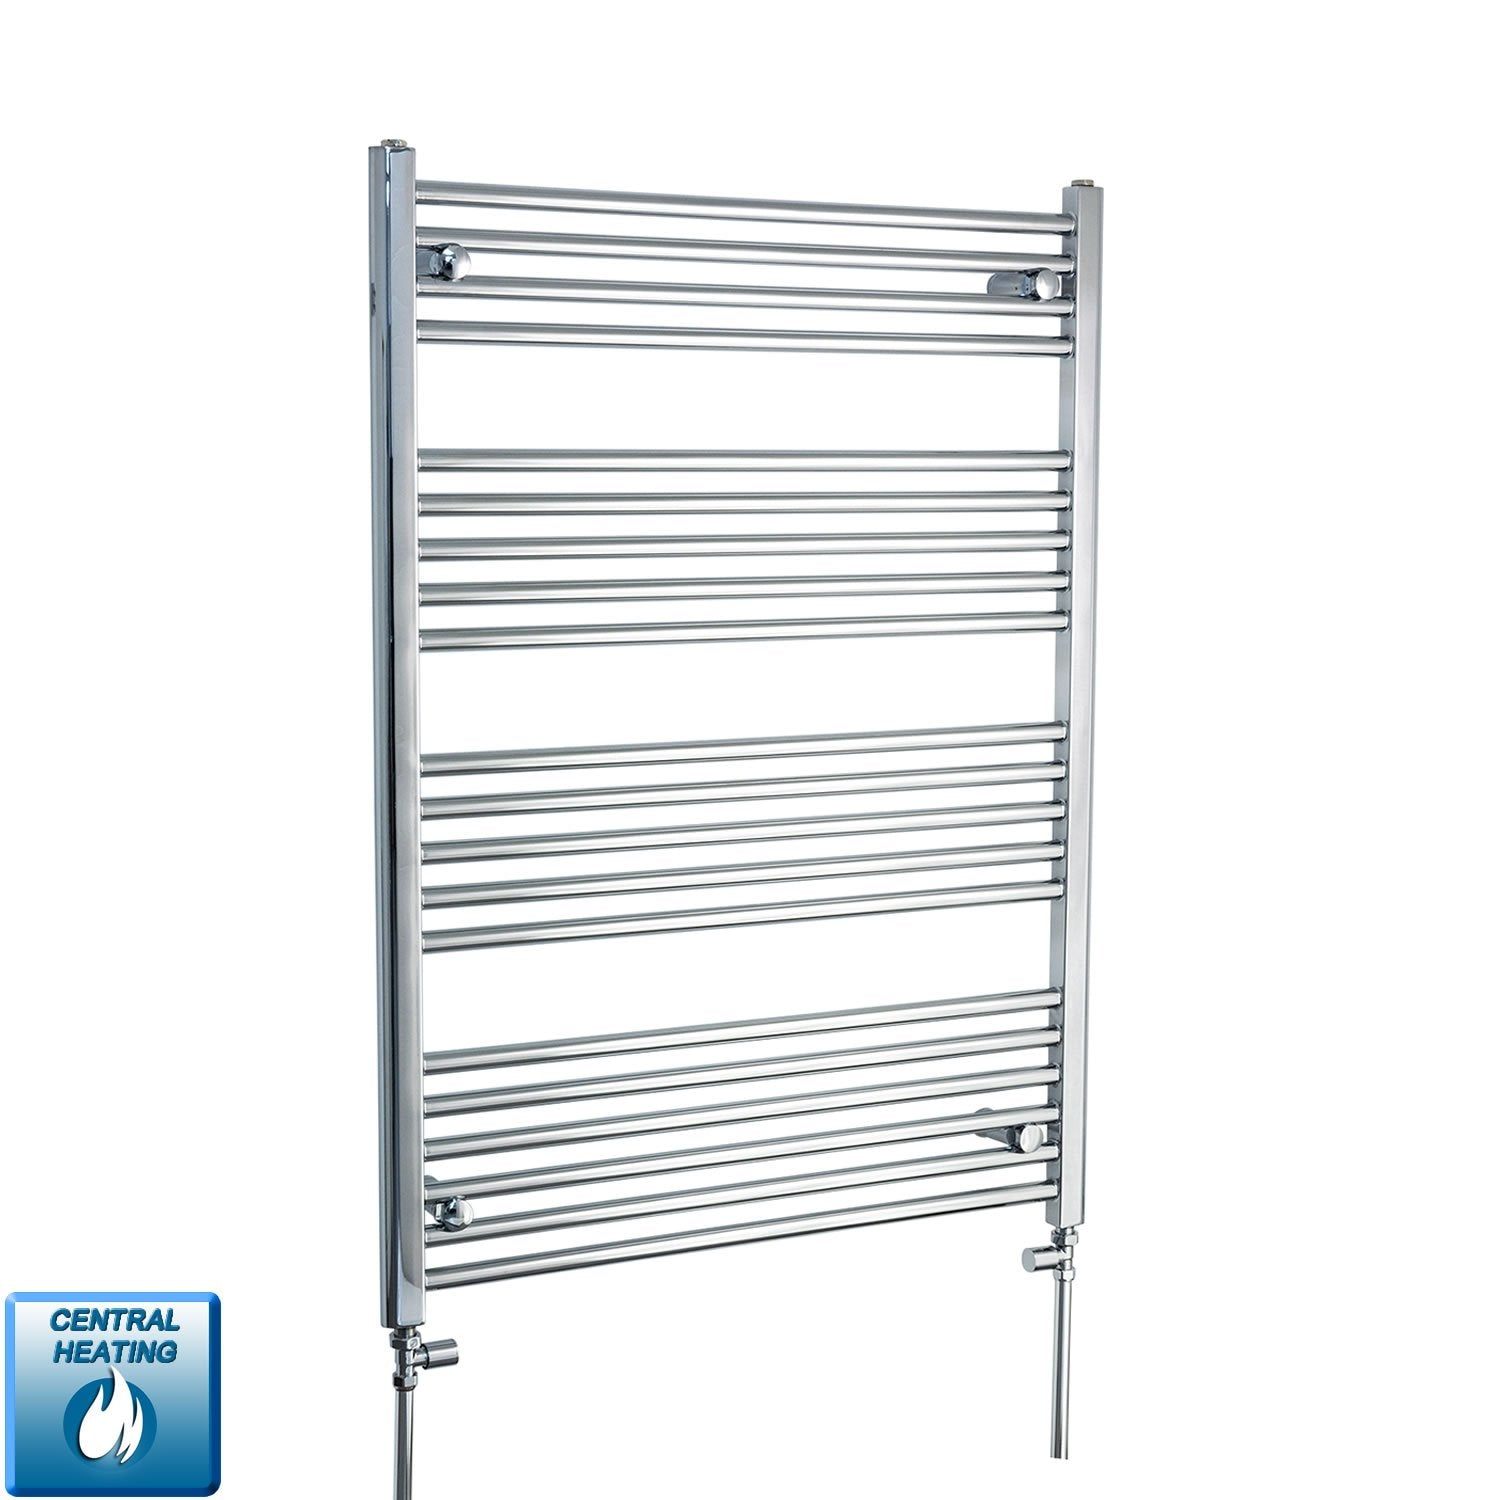 750mm Wide 1100mm High Flat Chrome Heated Towel Rail Radiator HTR,With Straight Valve